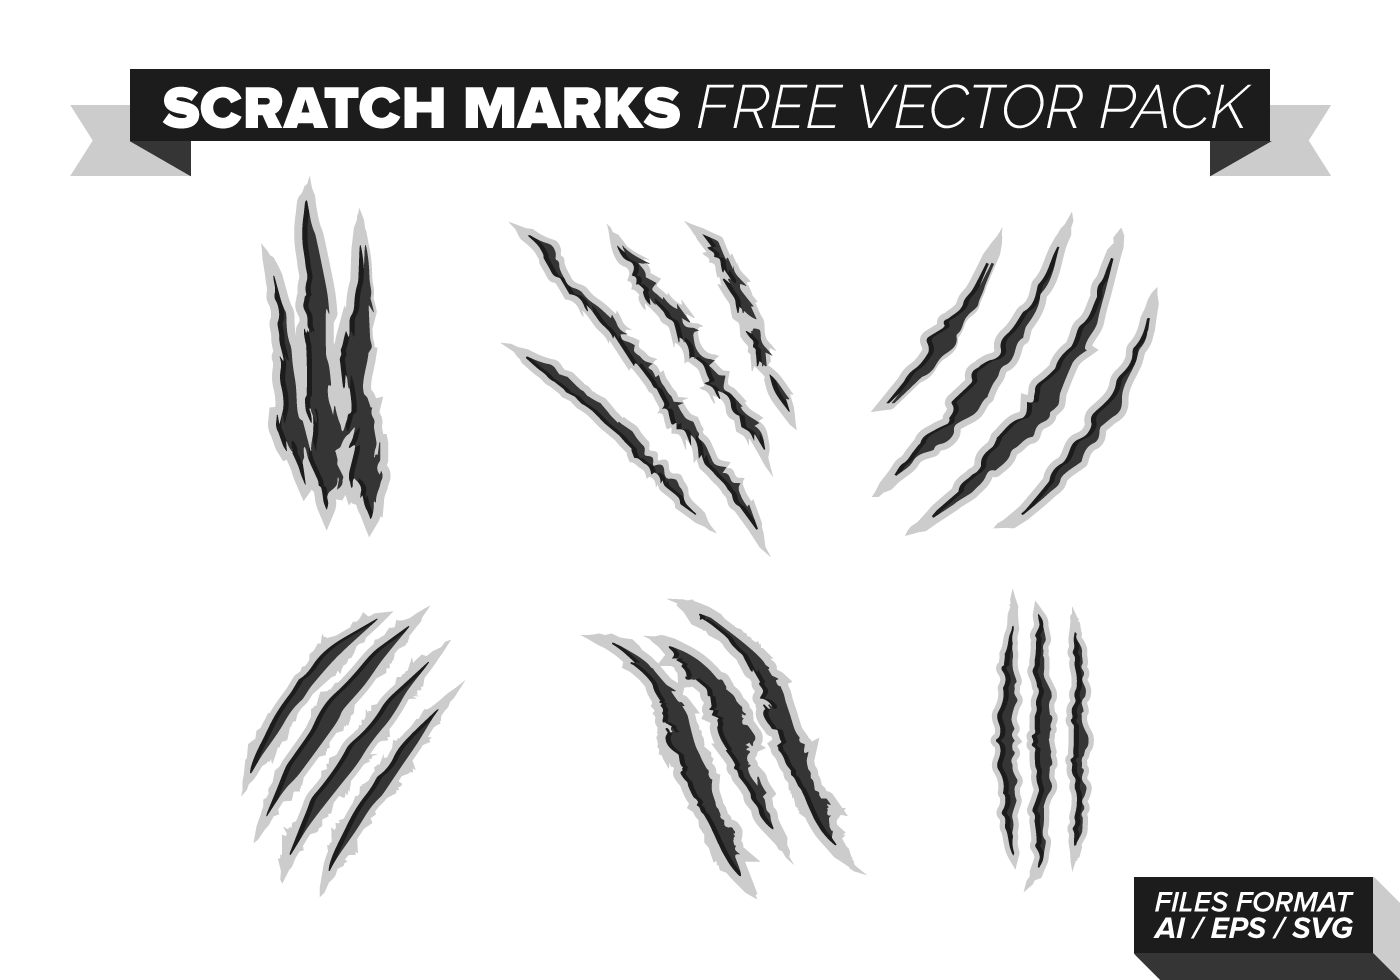 Scratch Marks Free Vector Pack Download Free Vectors